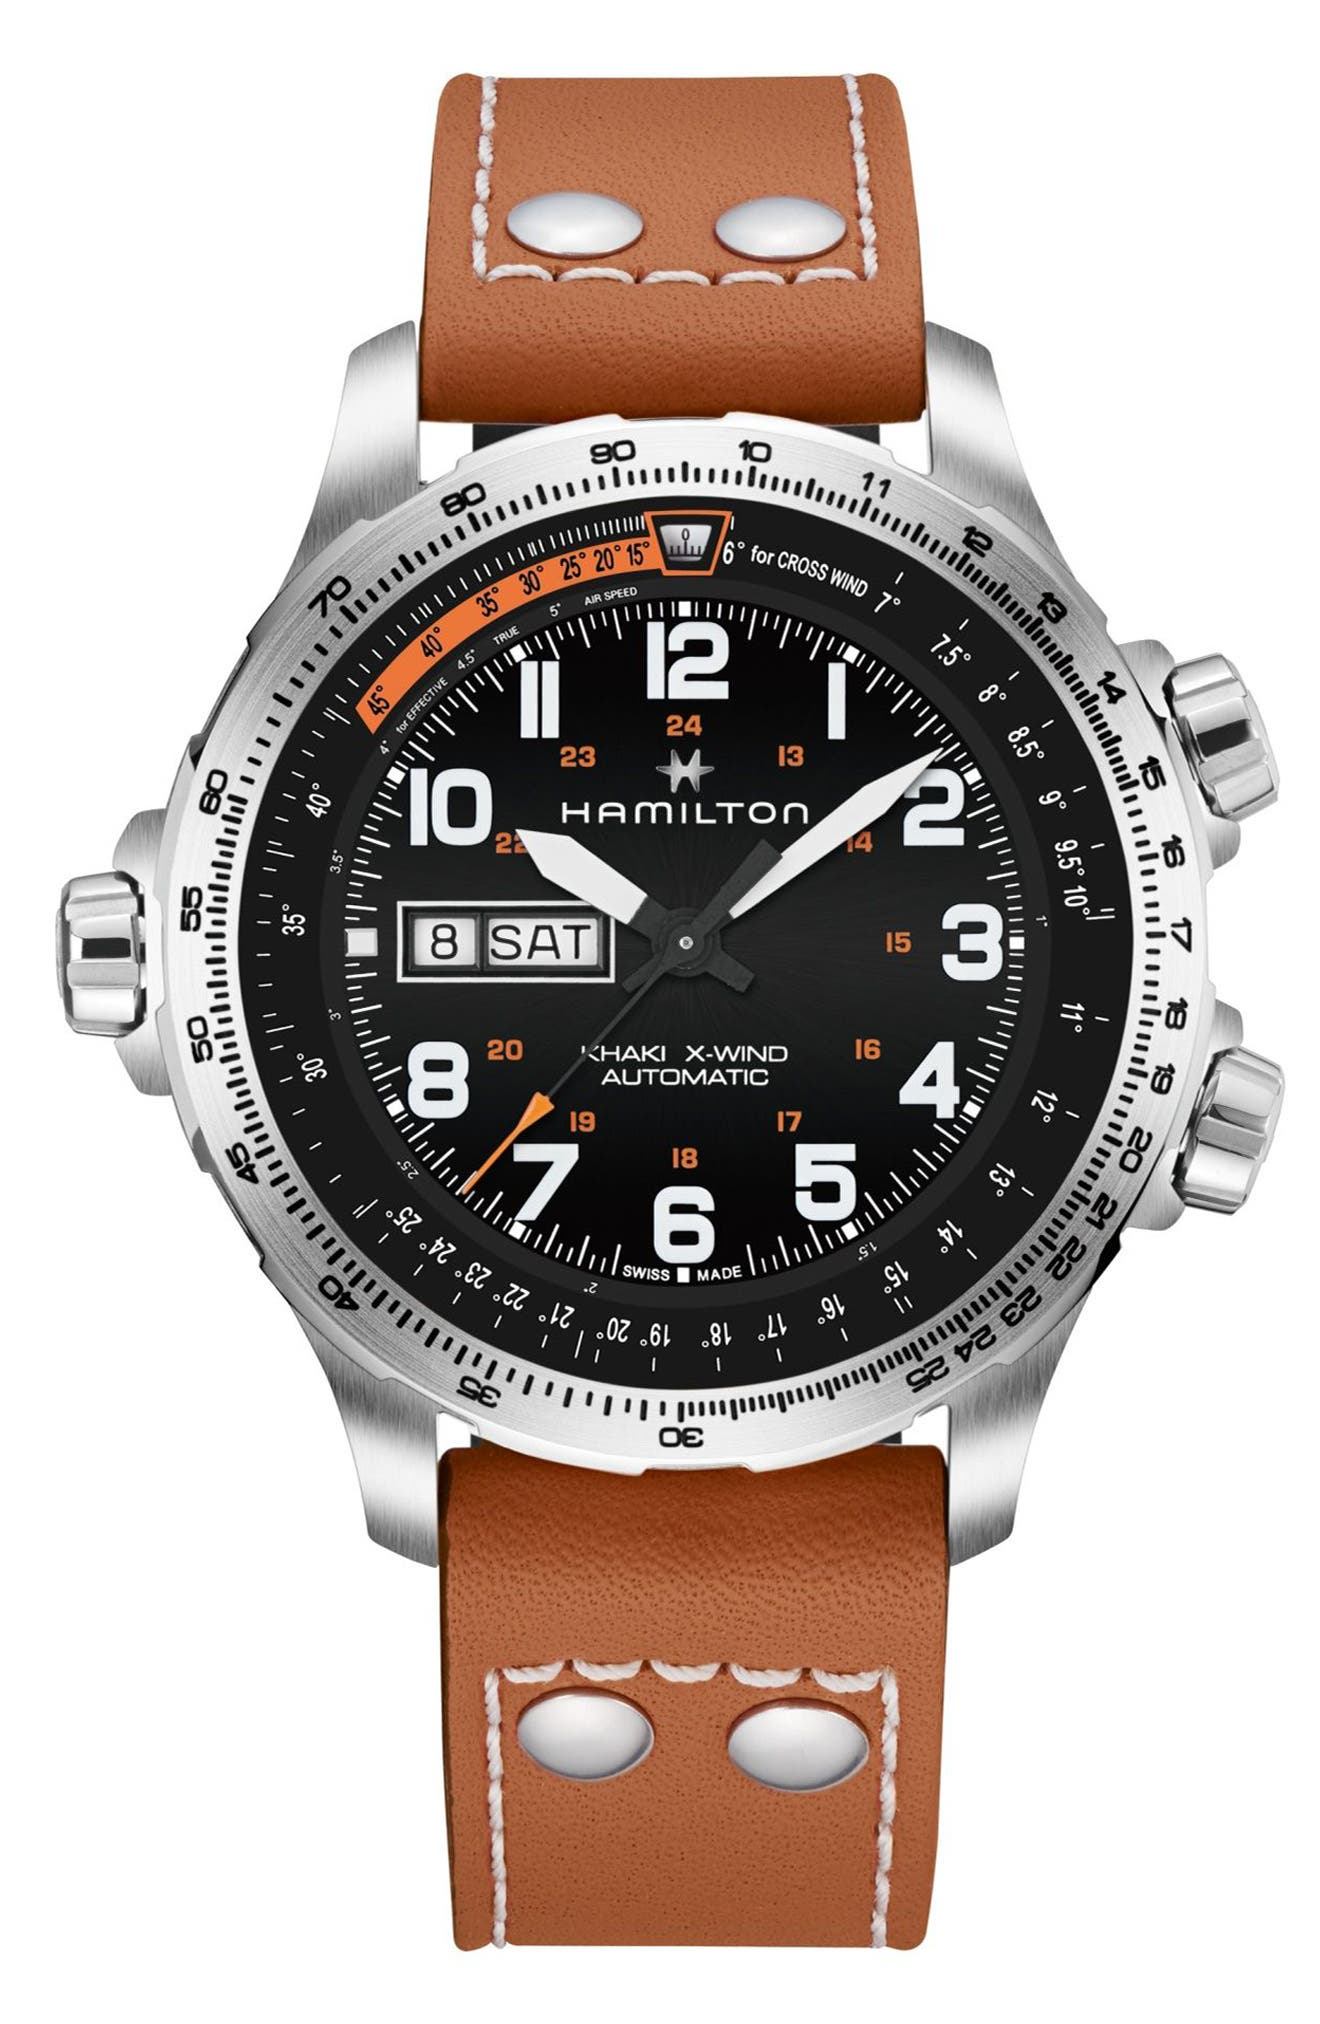 Alternate Image 1 Selected - Hamilton Khaki X-Wind Automatic Chronograph Leather Strap Watch, 45mm